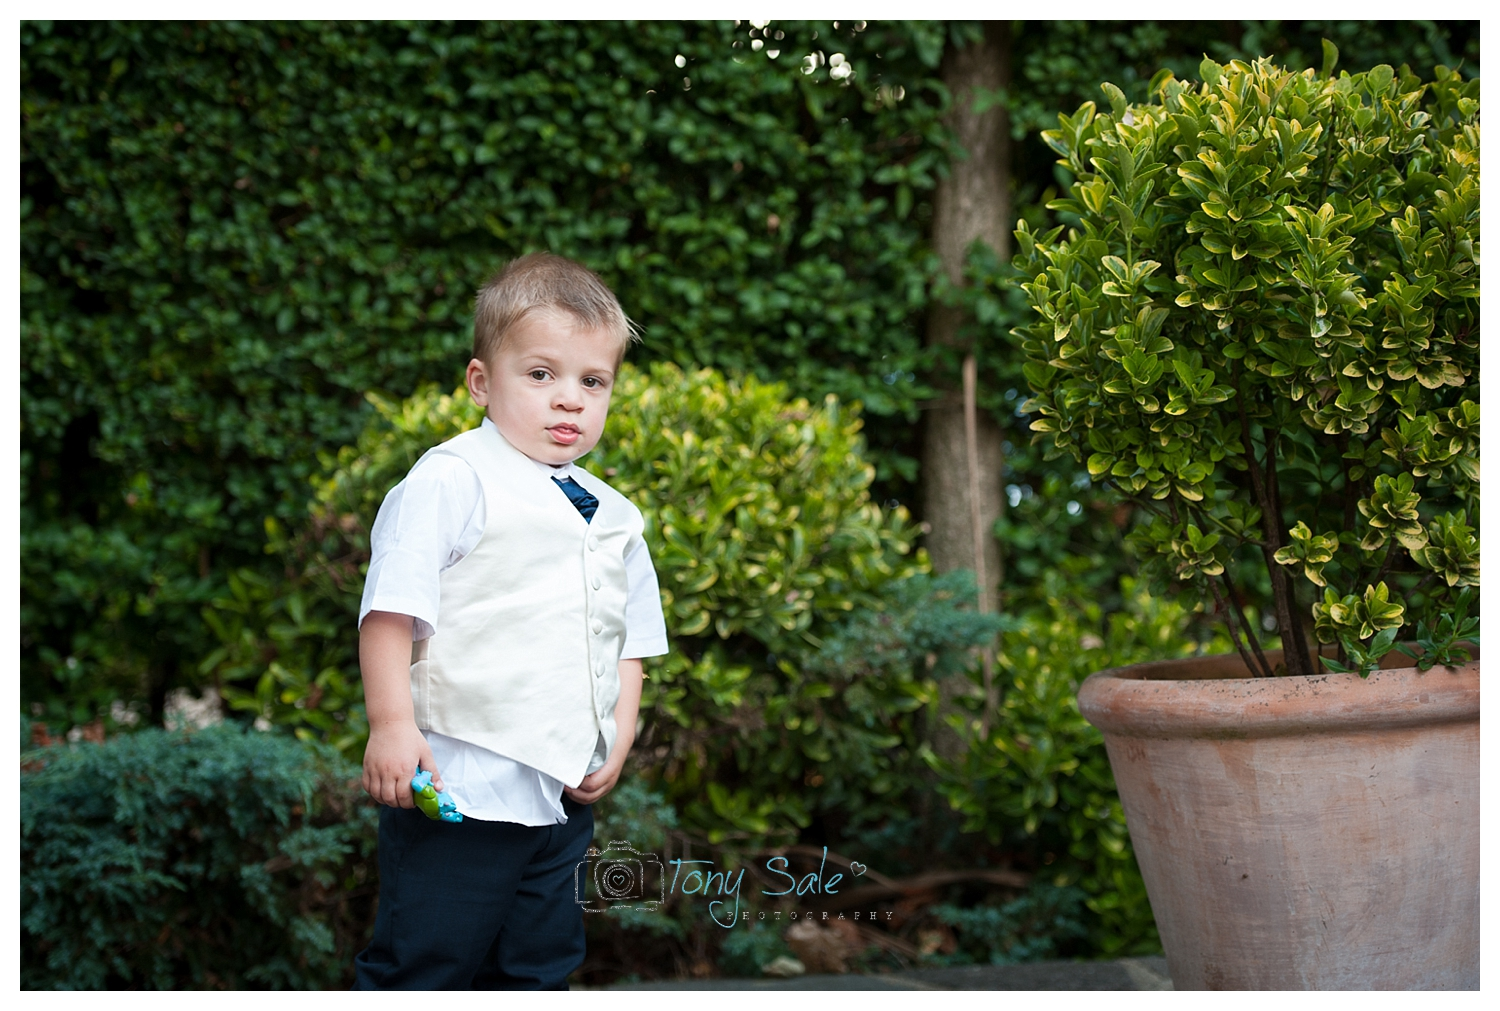 Hampton Court Wedding_Tony Sale Photography_031